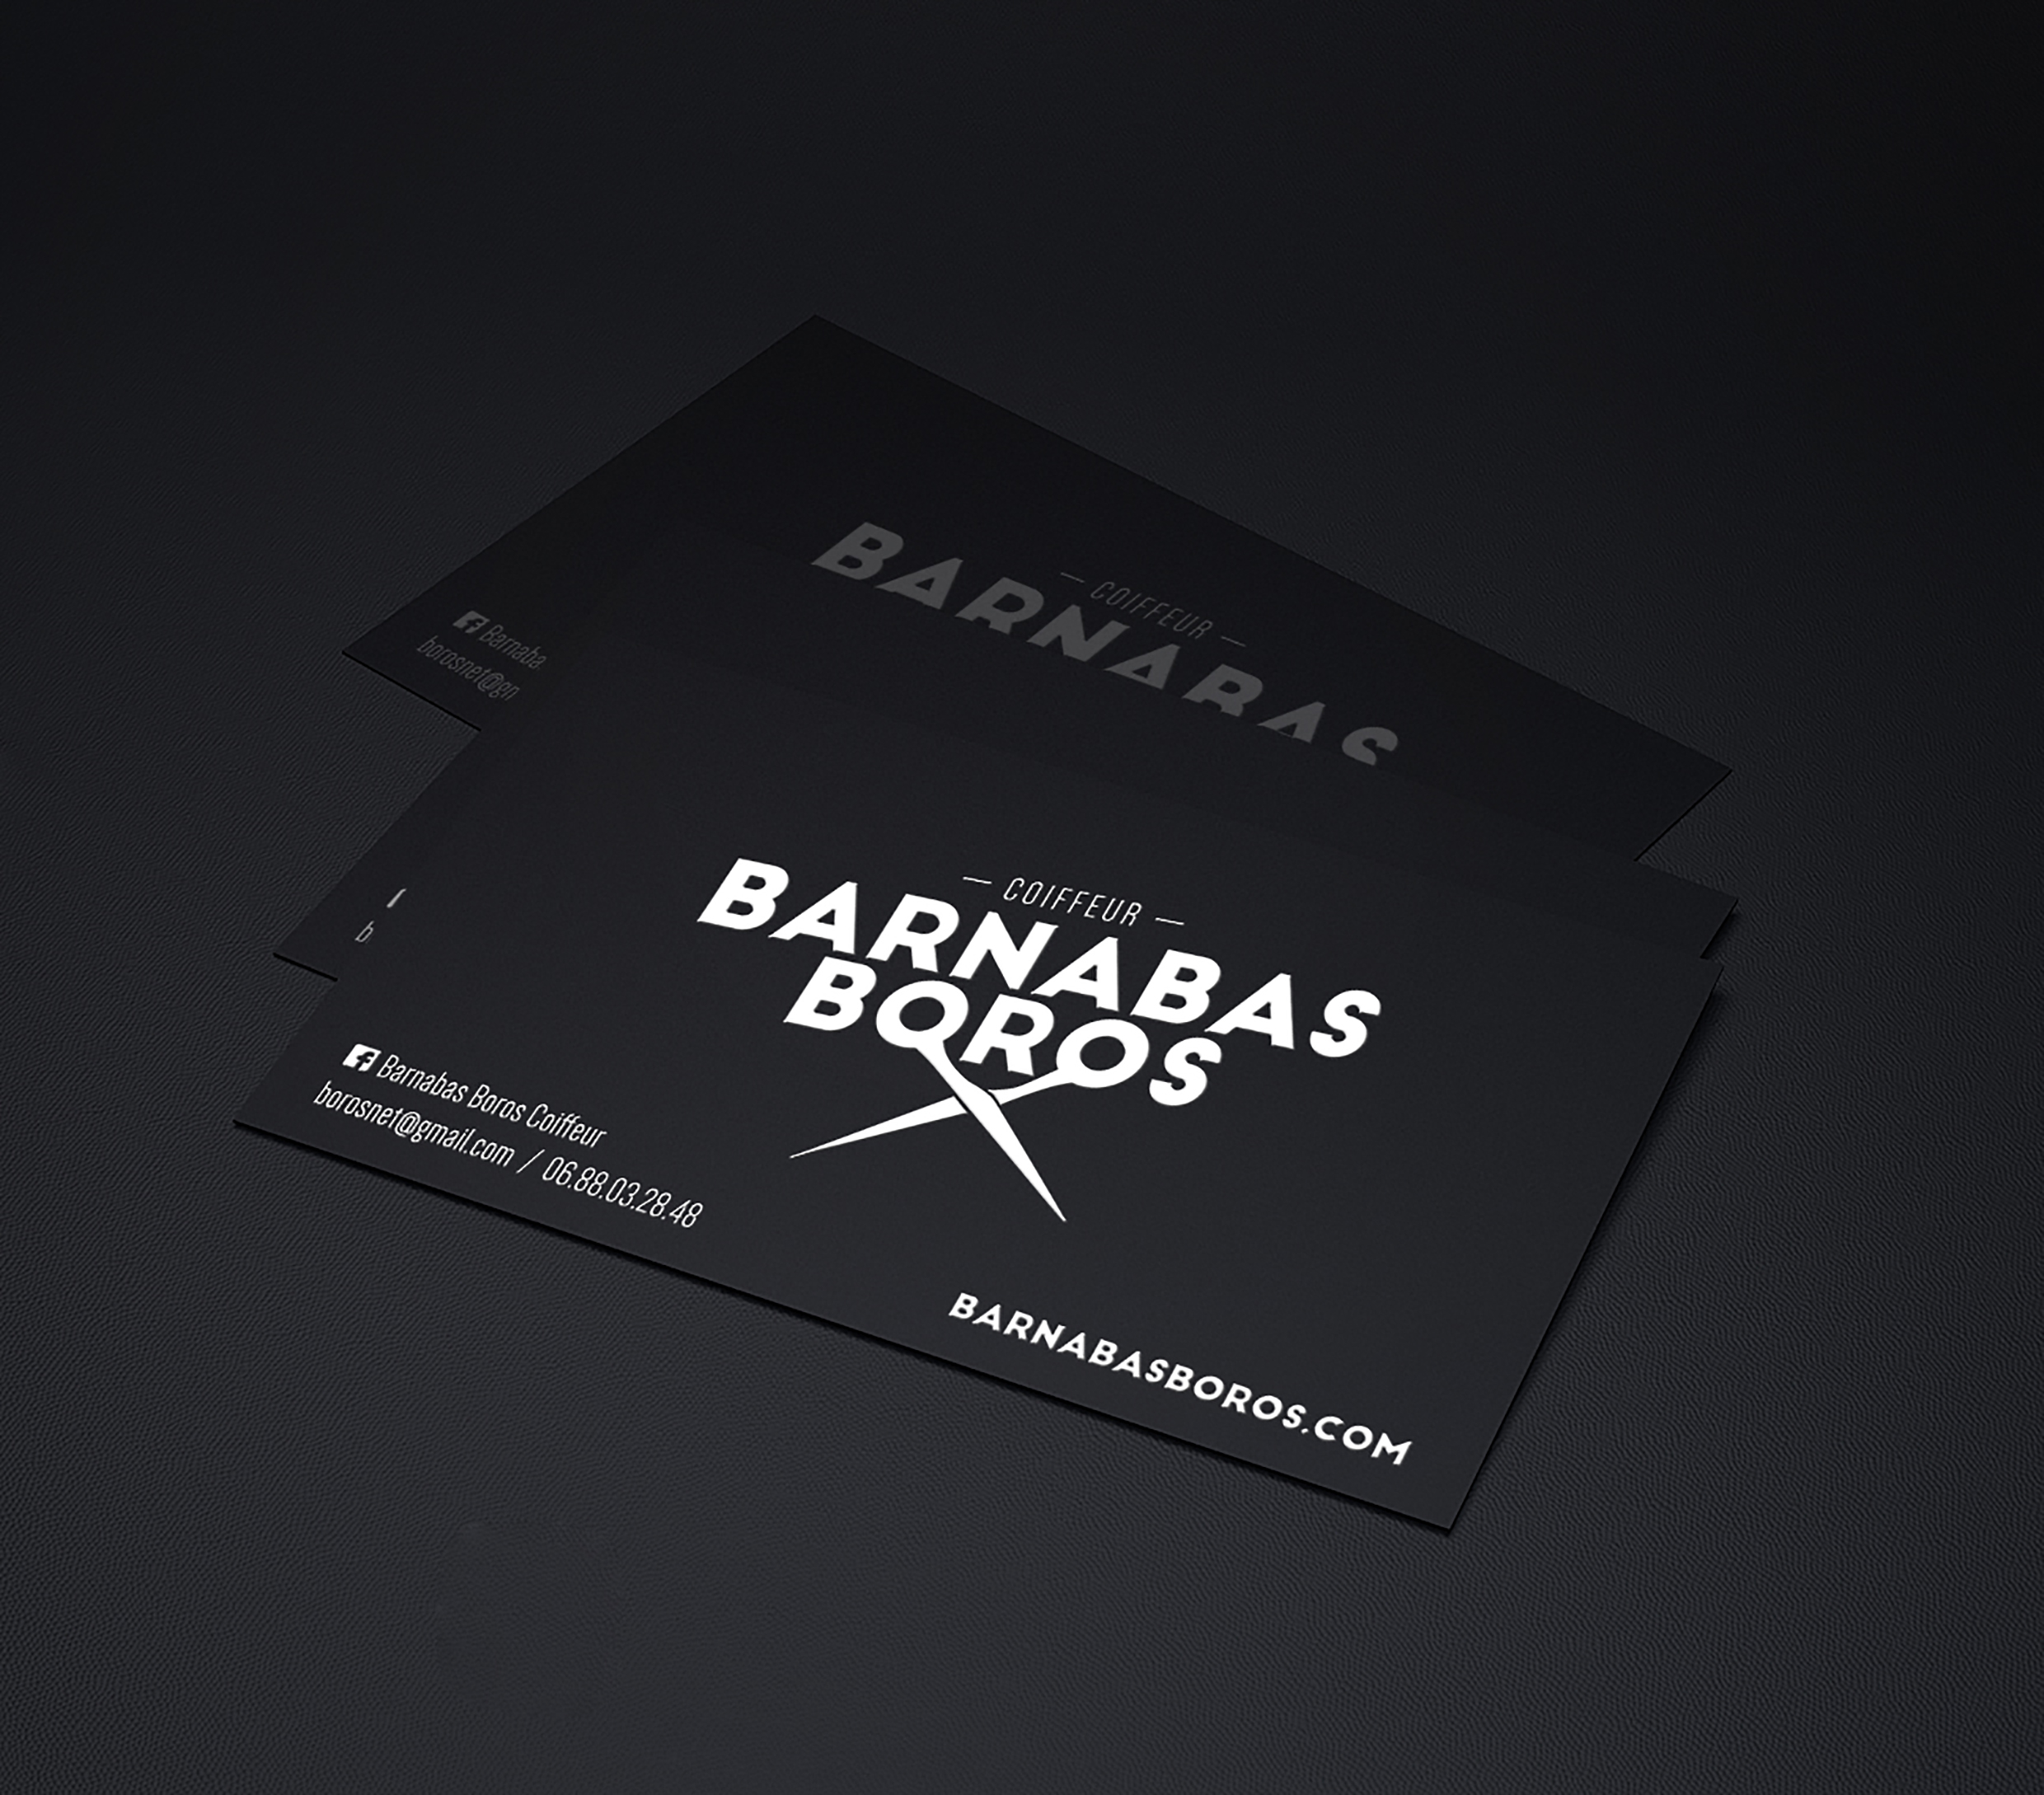 MOCK UP_BARNABASBOROS